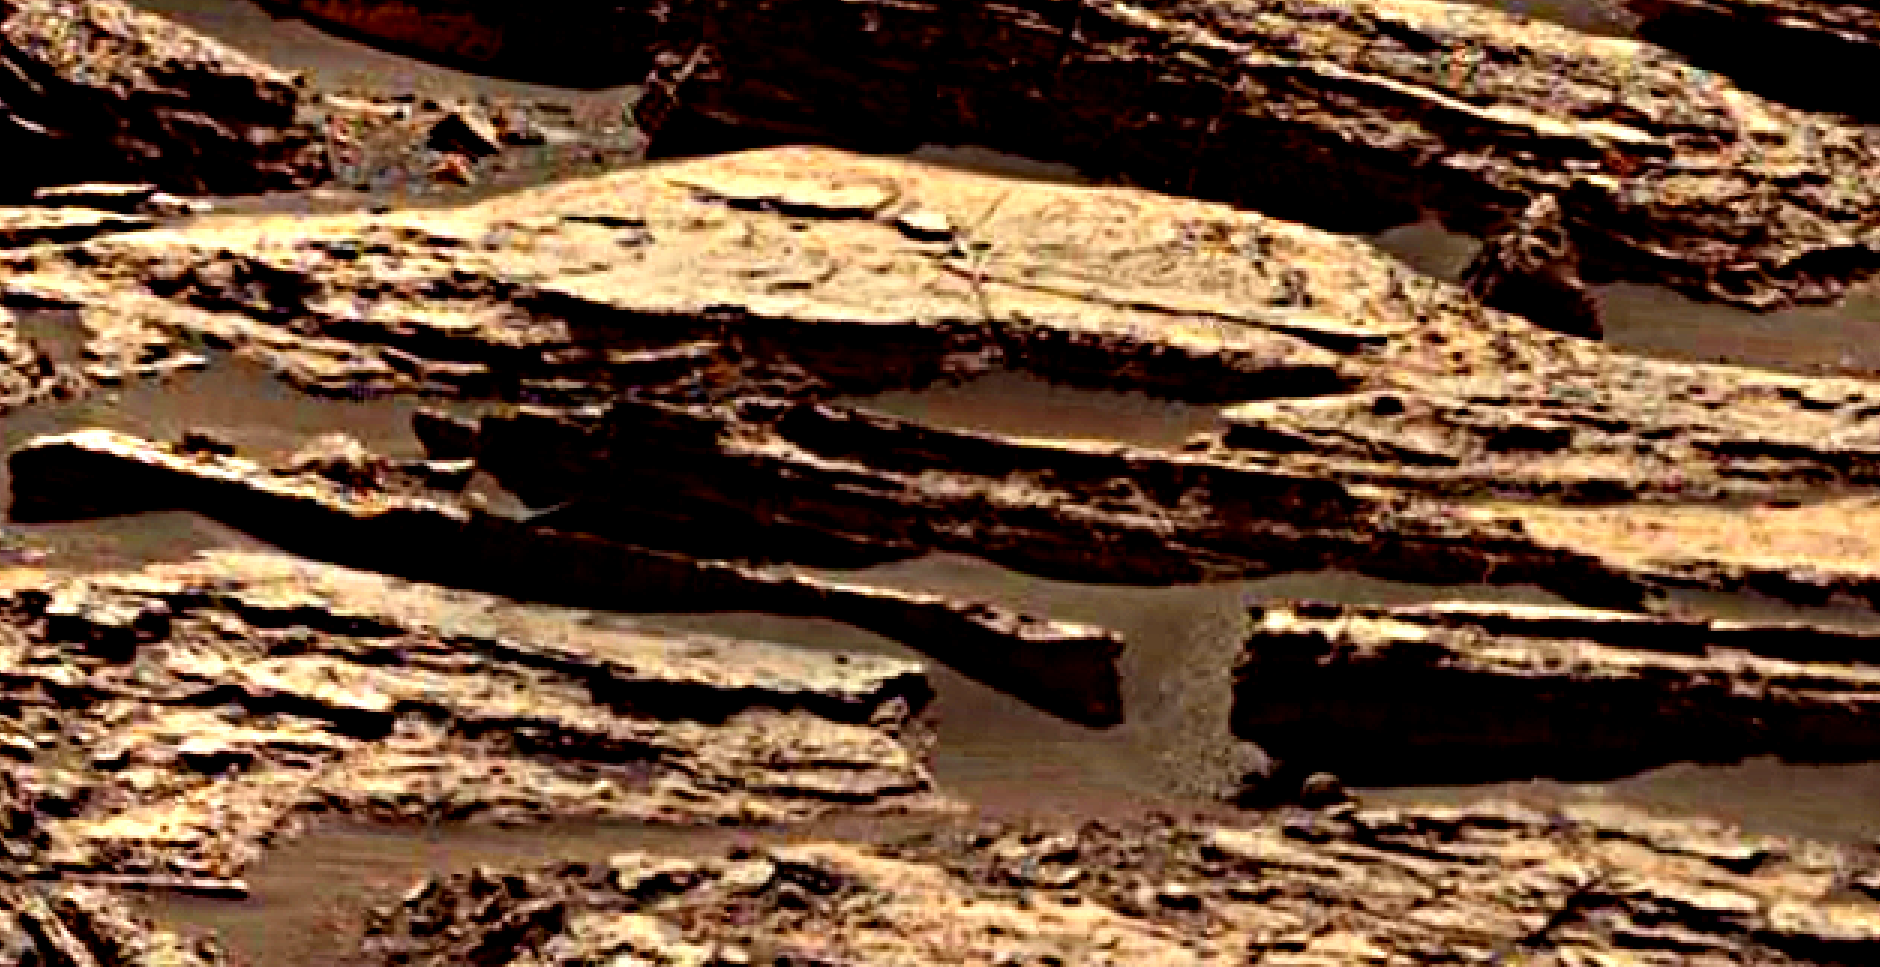 mars-sol-1489-anomaly-artifacts-4-was-life-on-mars